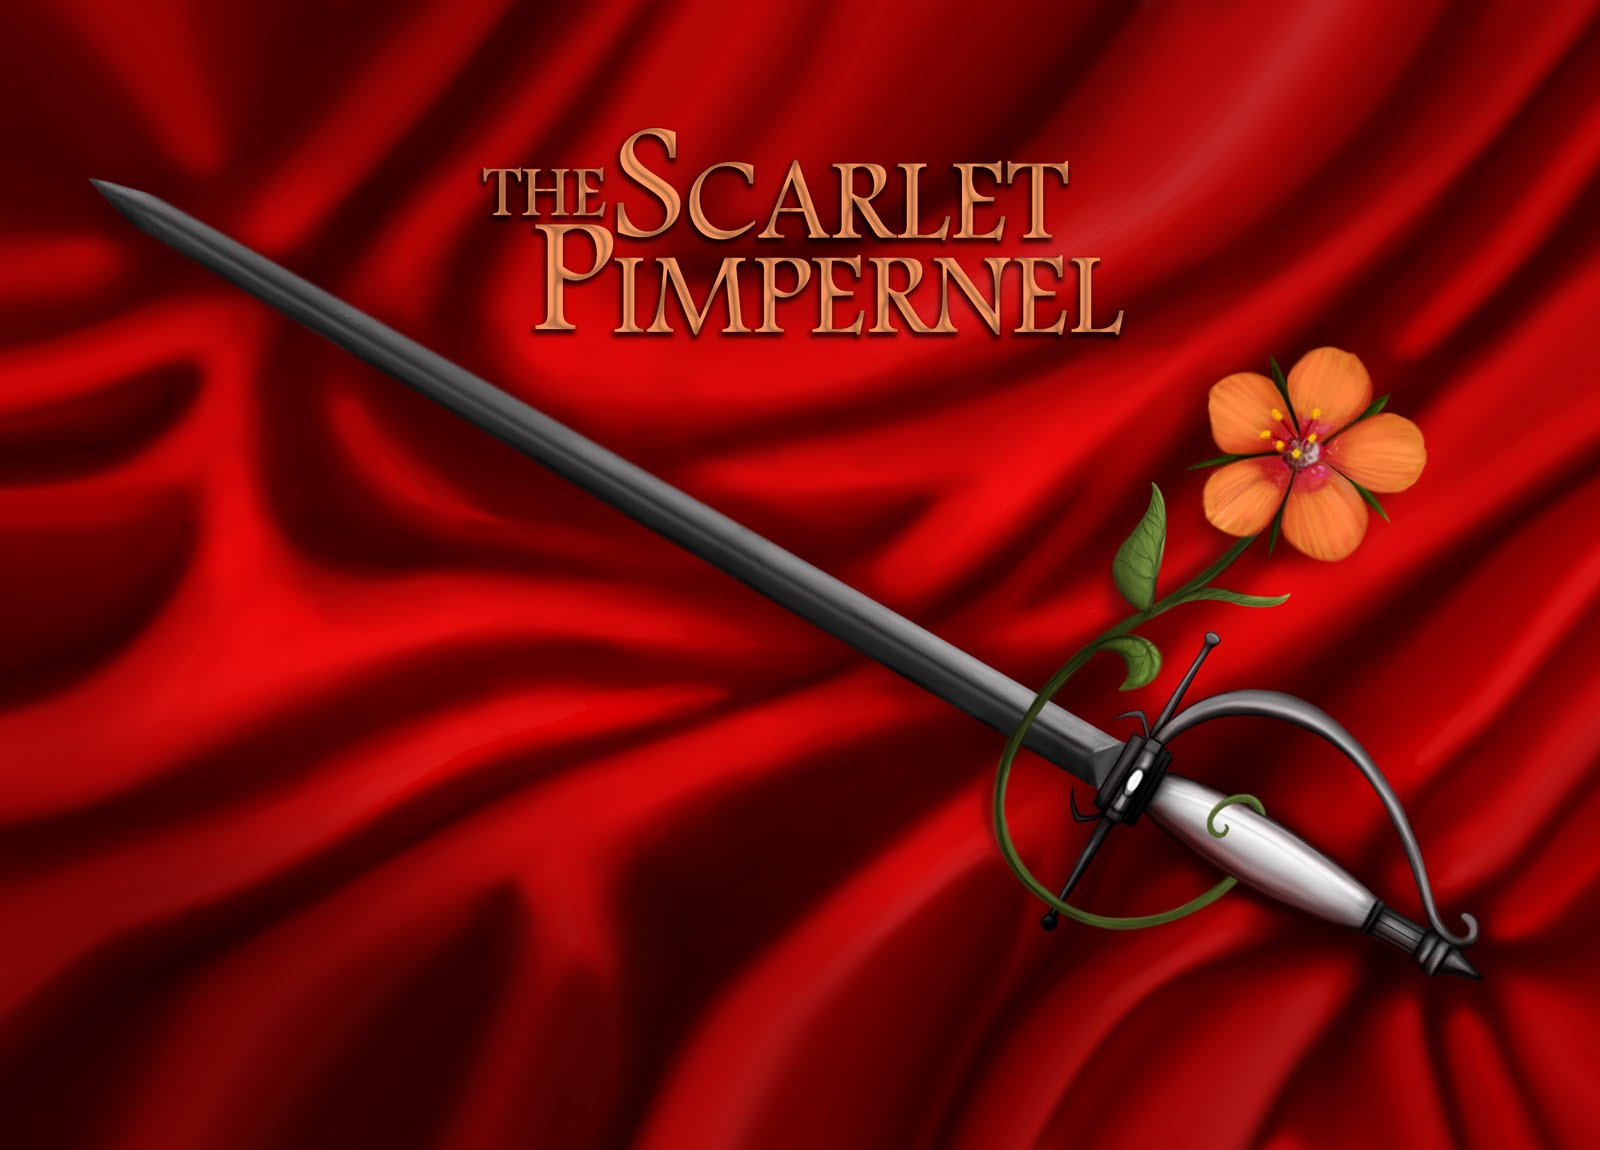 The scarlet pimpernel pictures